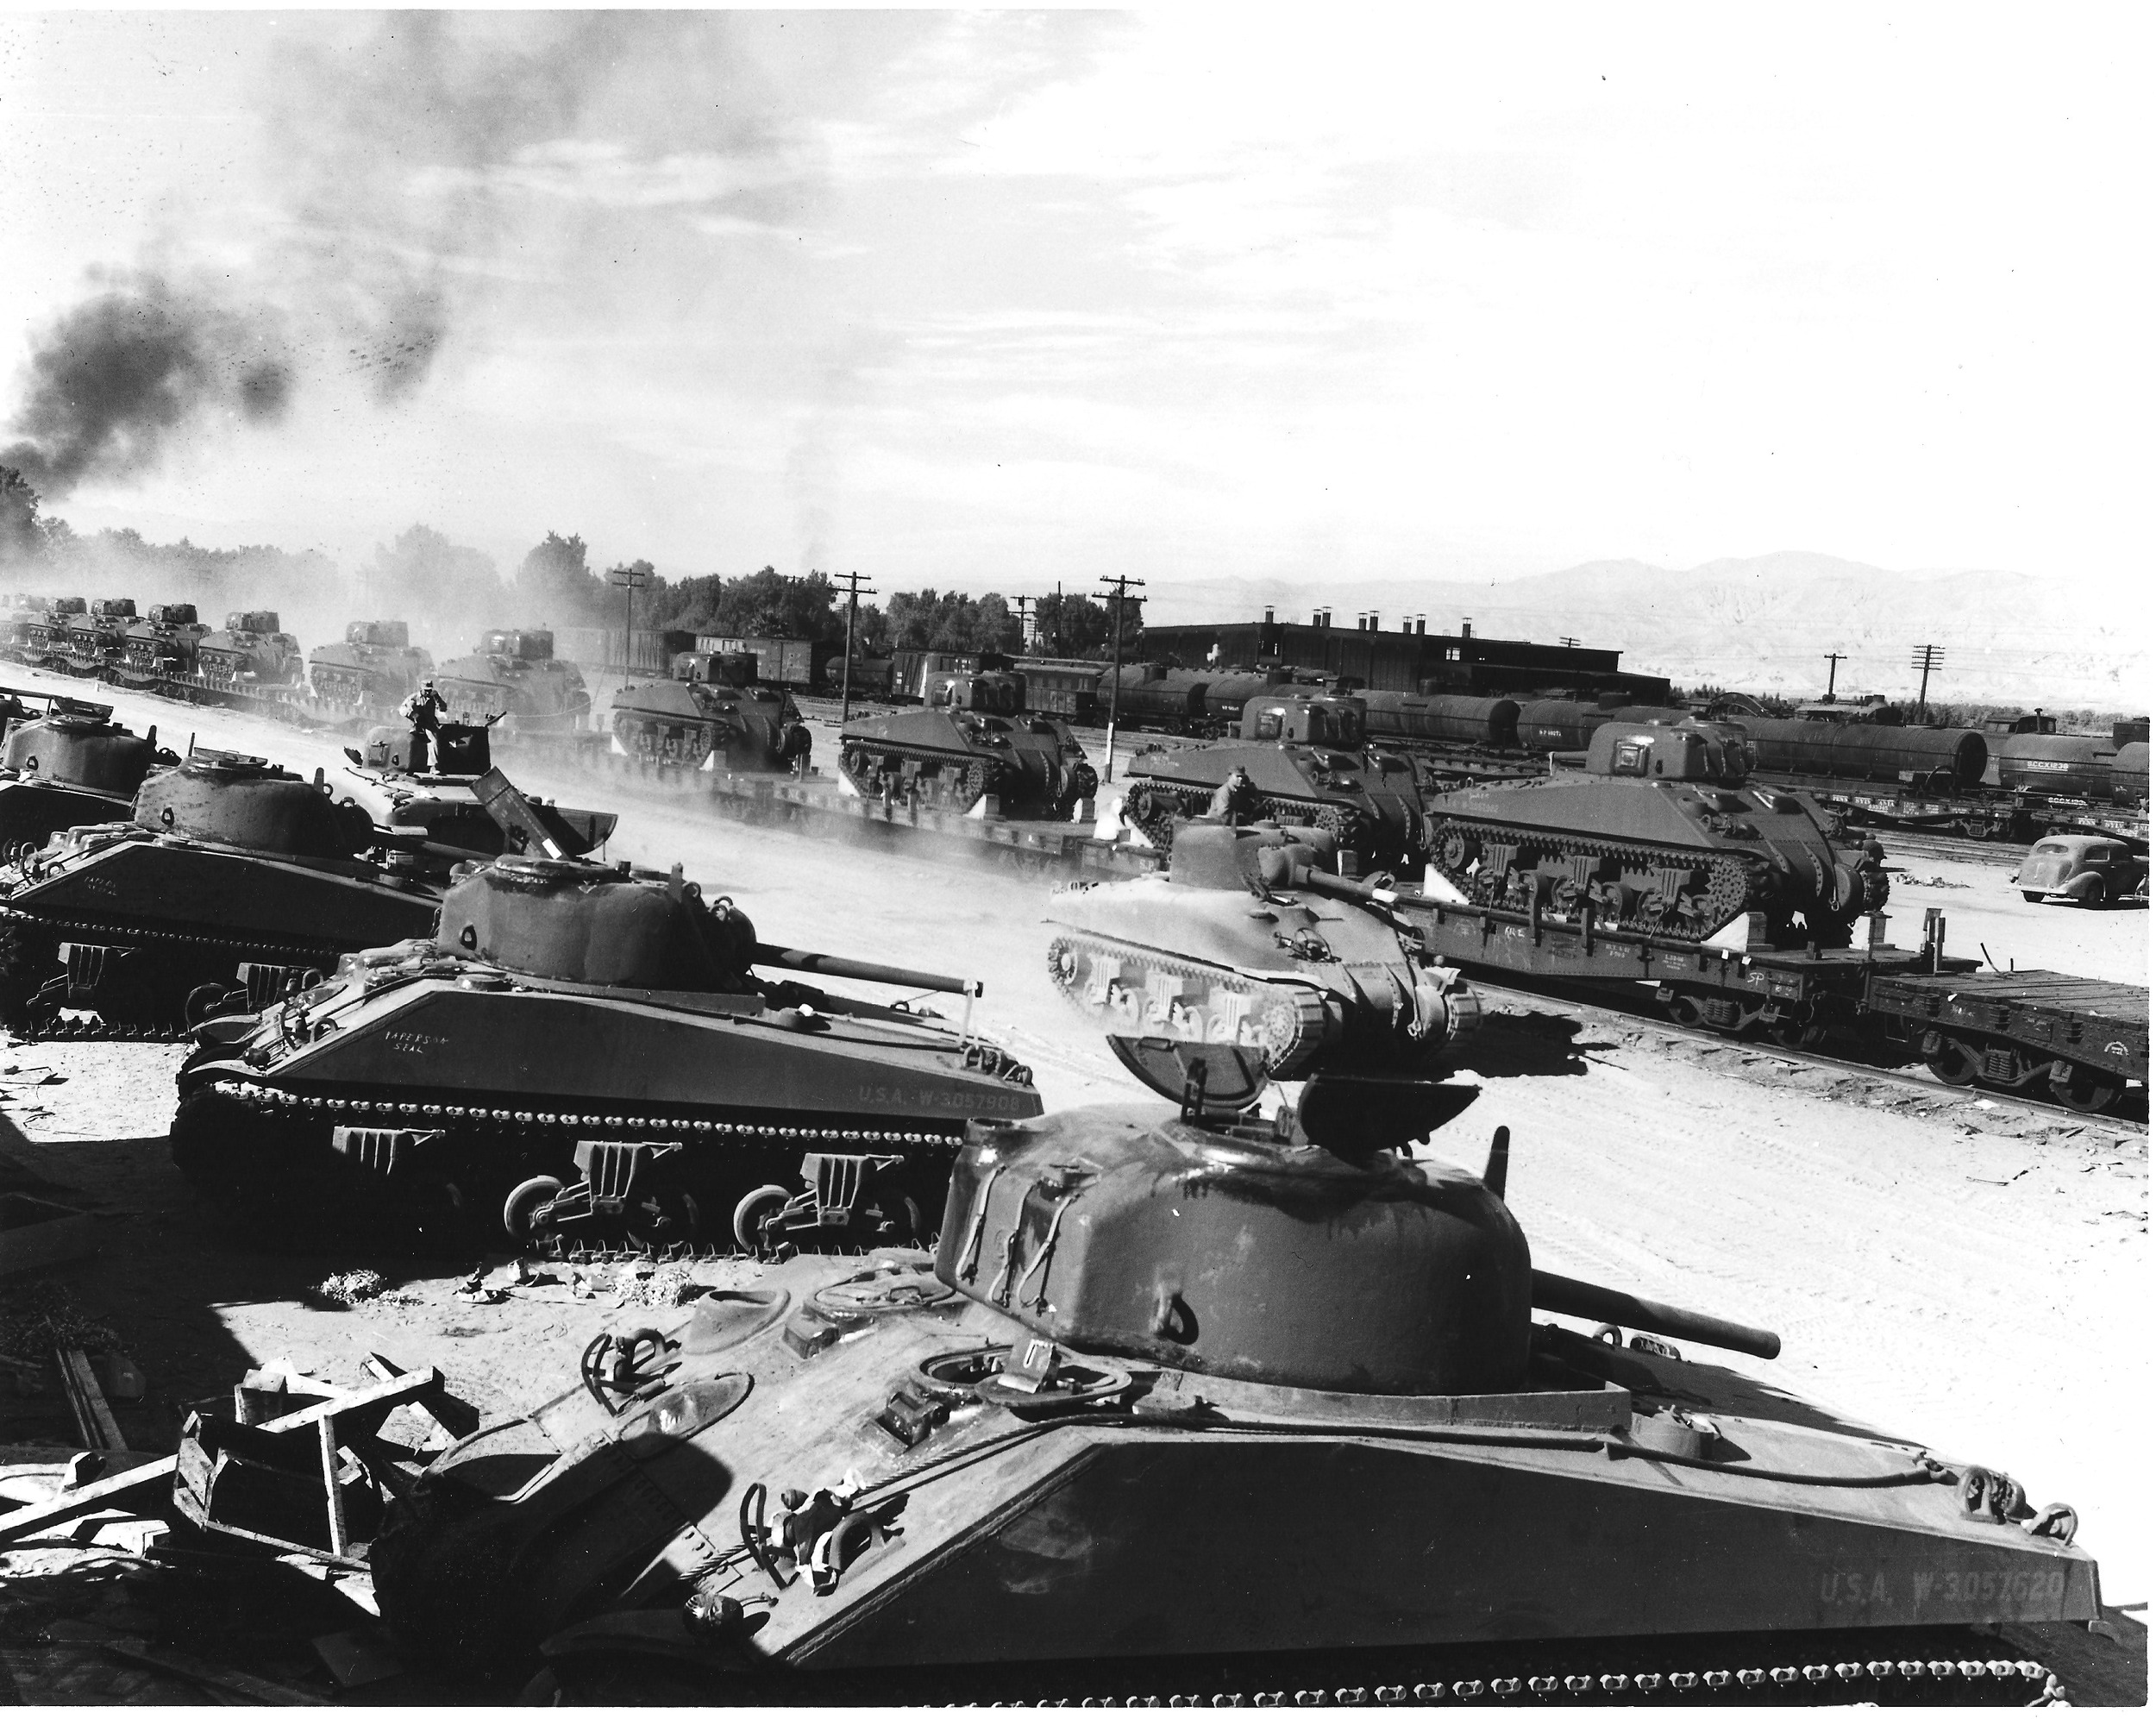 Tanks are unloaded at the Indio rail yards in December 1942. The army's use of the railroad disrupted both passenger and cargo transport; local rail yards experienced labor shortages throughout the war as keeping up with army supplies, equipment, and men seemed a never ending challenge. U.S. Army photography, courtesy of the General Patton Memorial Museum.